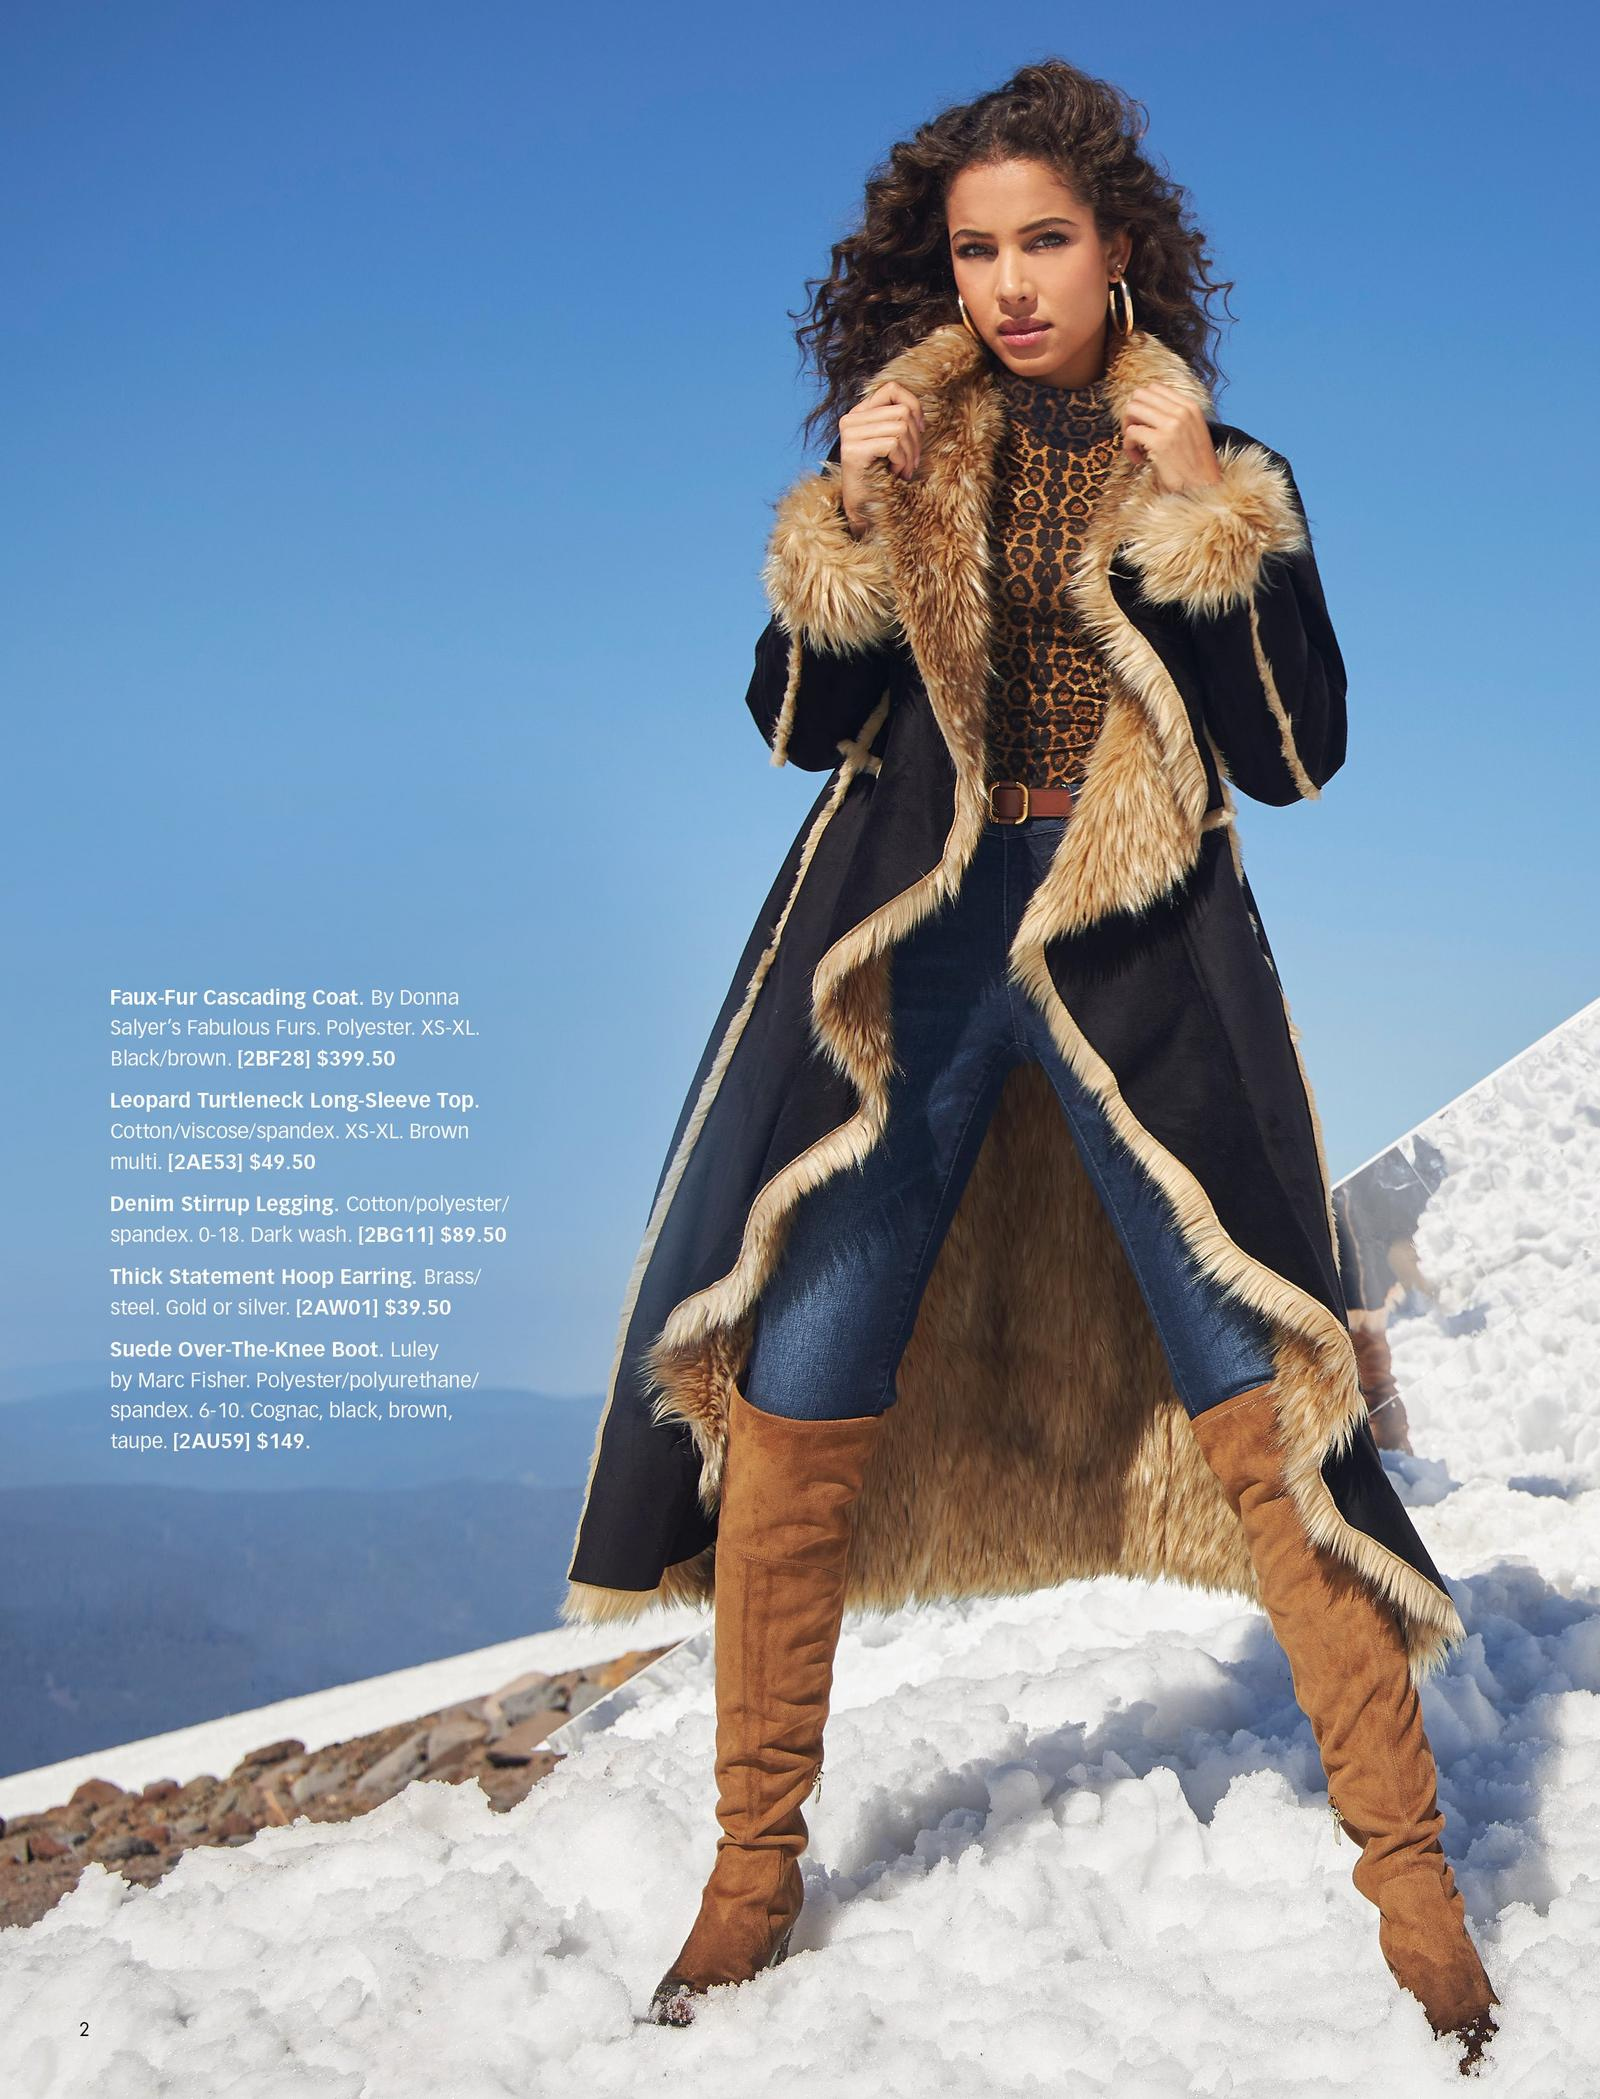 model wearing a long black cascading coat with tan faux fur, an animal print turtleneck long-sleeve top, jeans, and over-the-knee suede boots in tan.